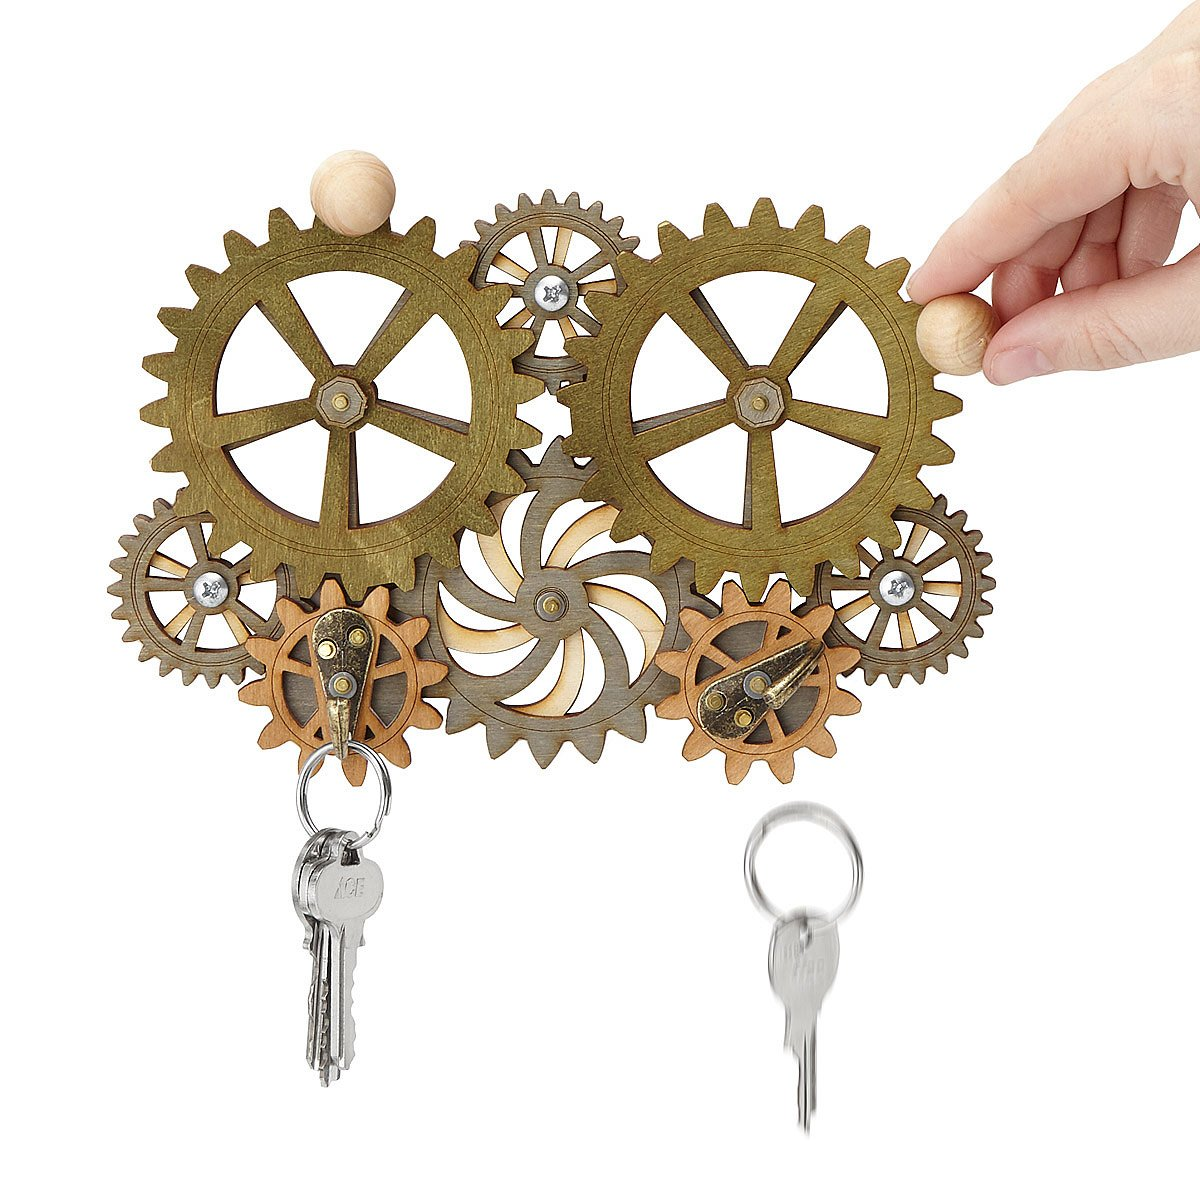 Kinetic Gear Key Holder steampunk style gift UncommonGoods